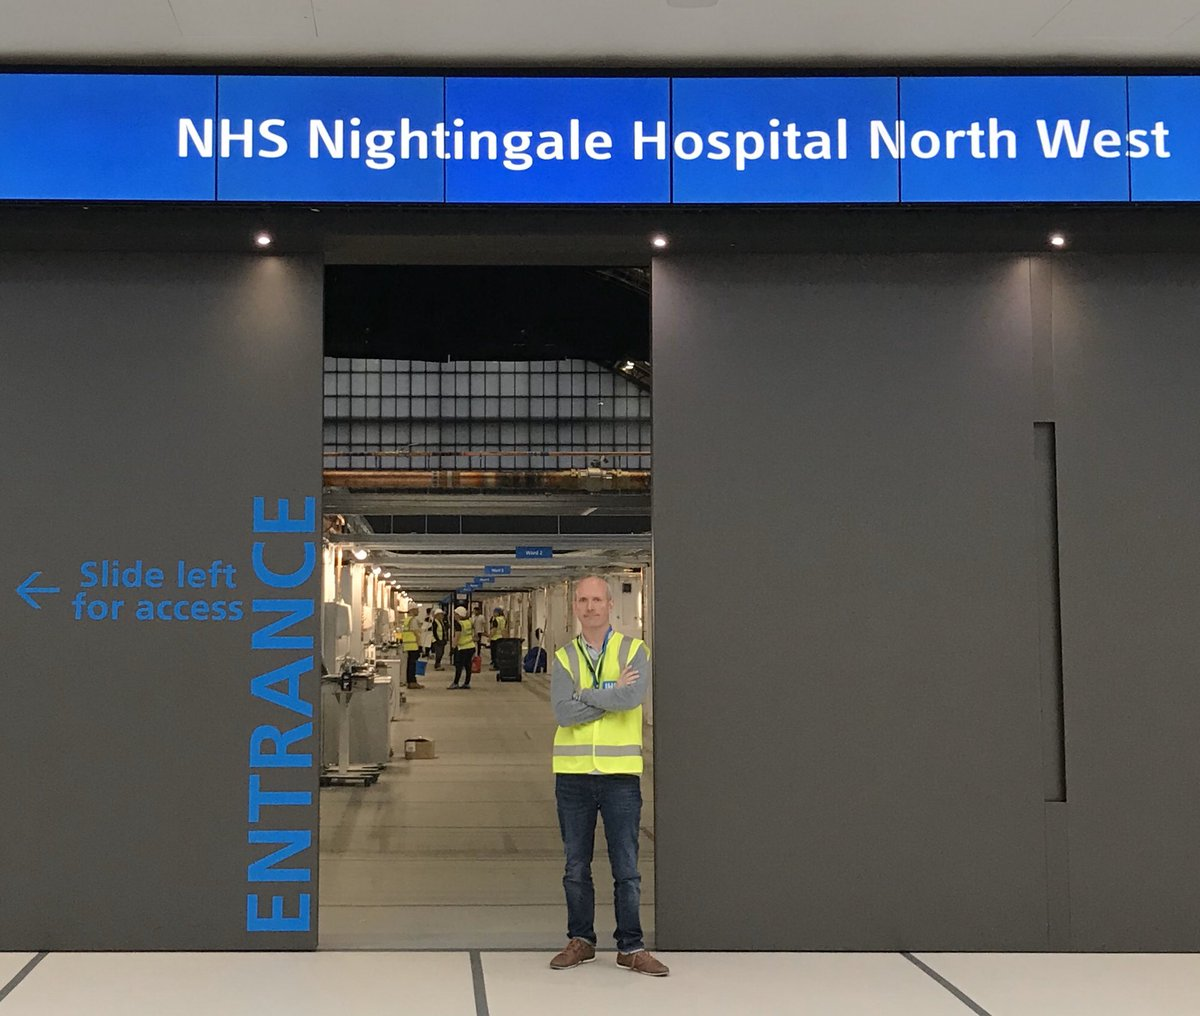 Just got home. The NHS Nightingale Hospital Northwest is complete. The most remarkable and astonishing achievement from all involved. #ClapForTheNHS #ClapForTheConstructionIndustry